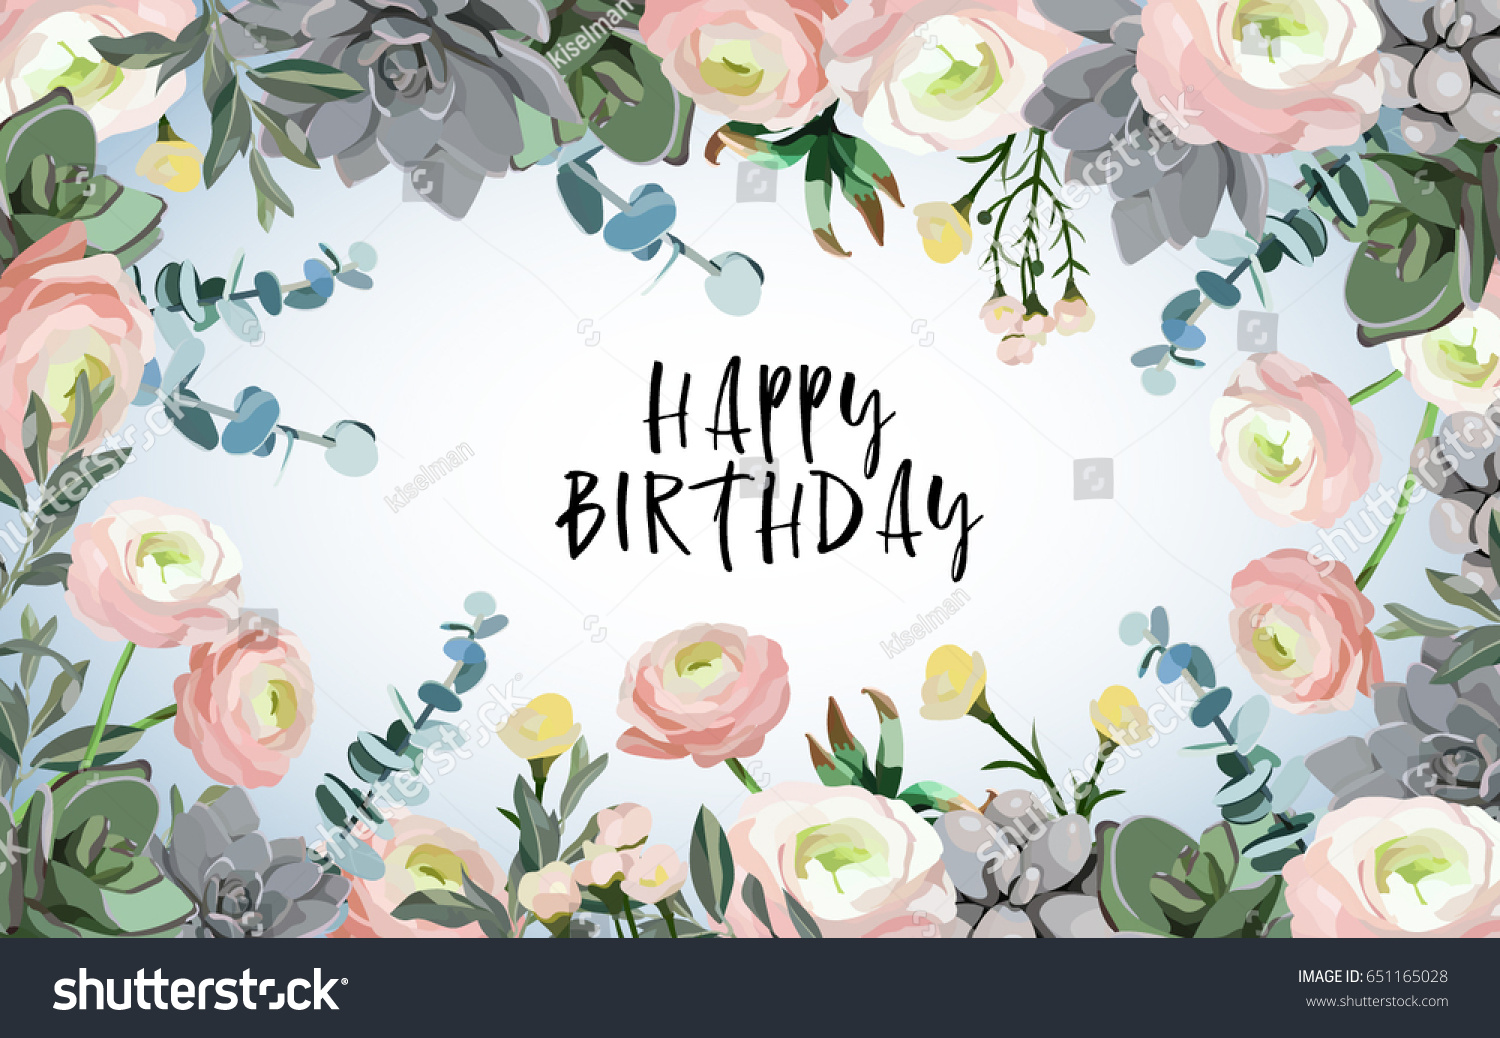 Happy Birthday Floral Background Flowers Ranunculus Stock Vector